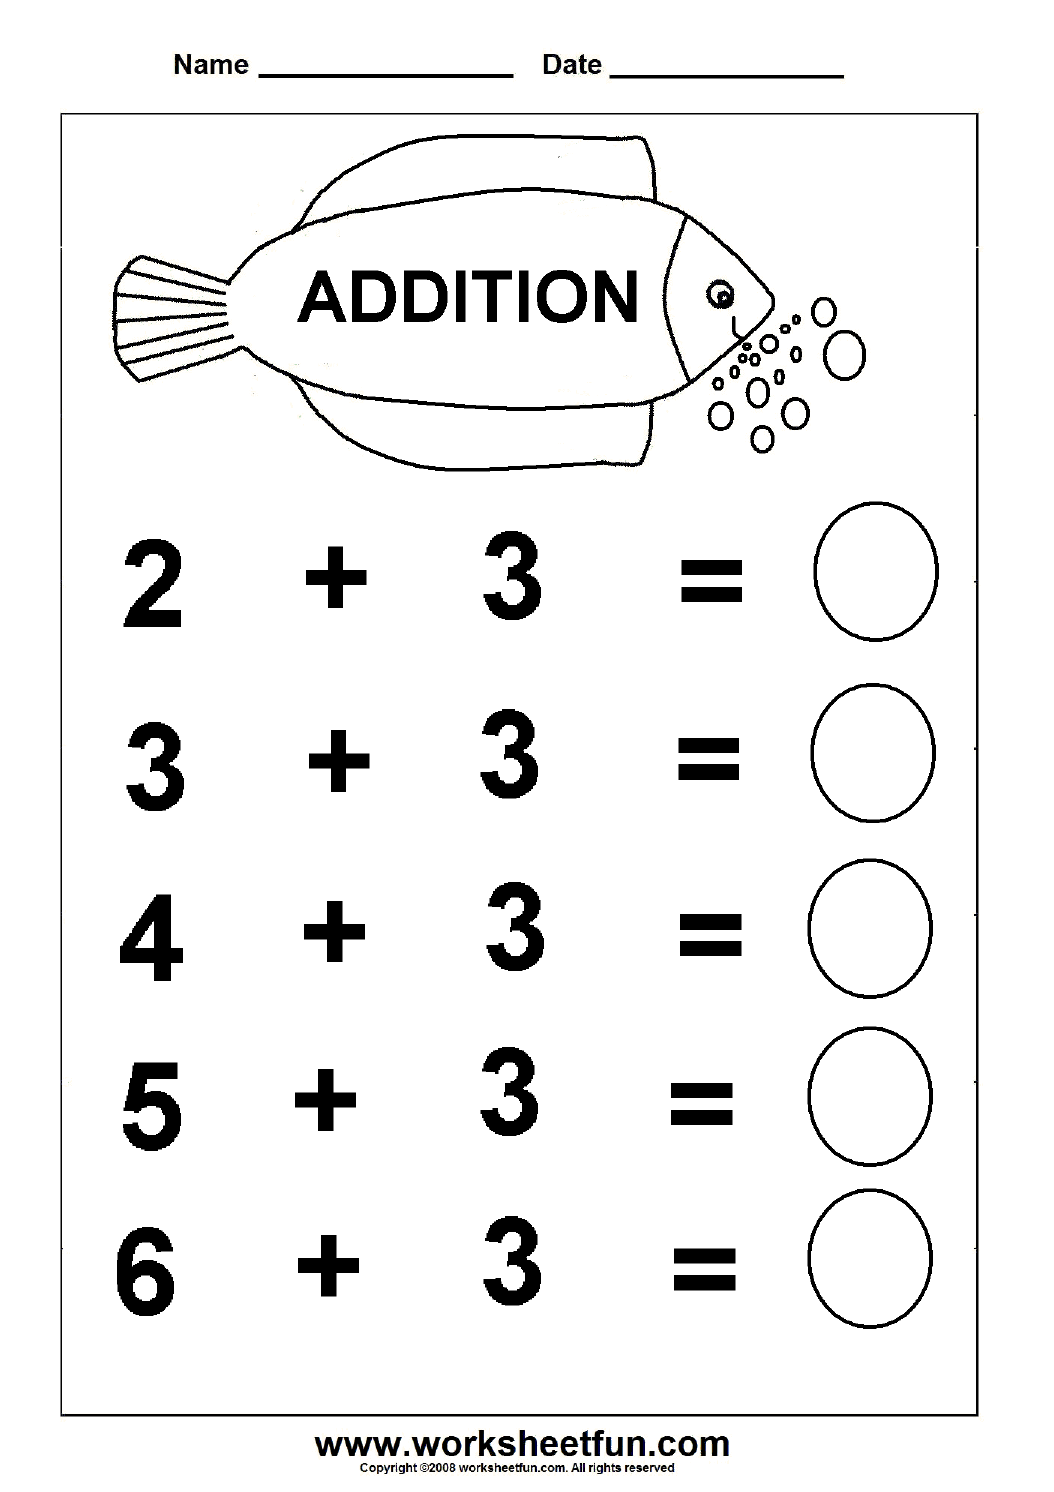 Worksheets Picture Addition Worksheets beginner addition 6 kindergarten worksheets free first grade worksheets